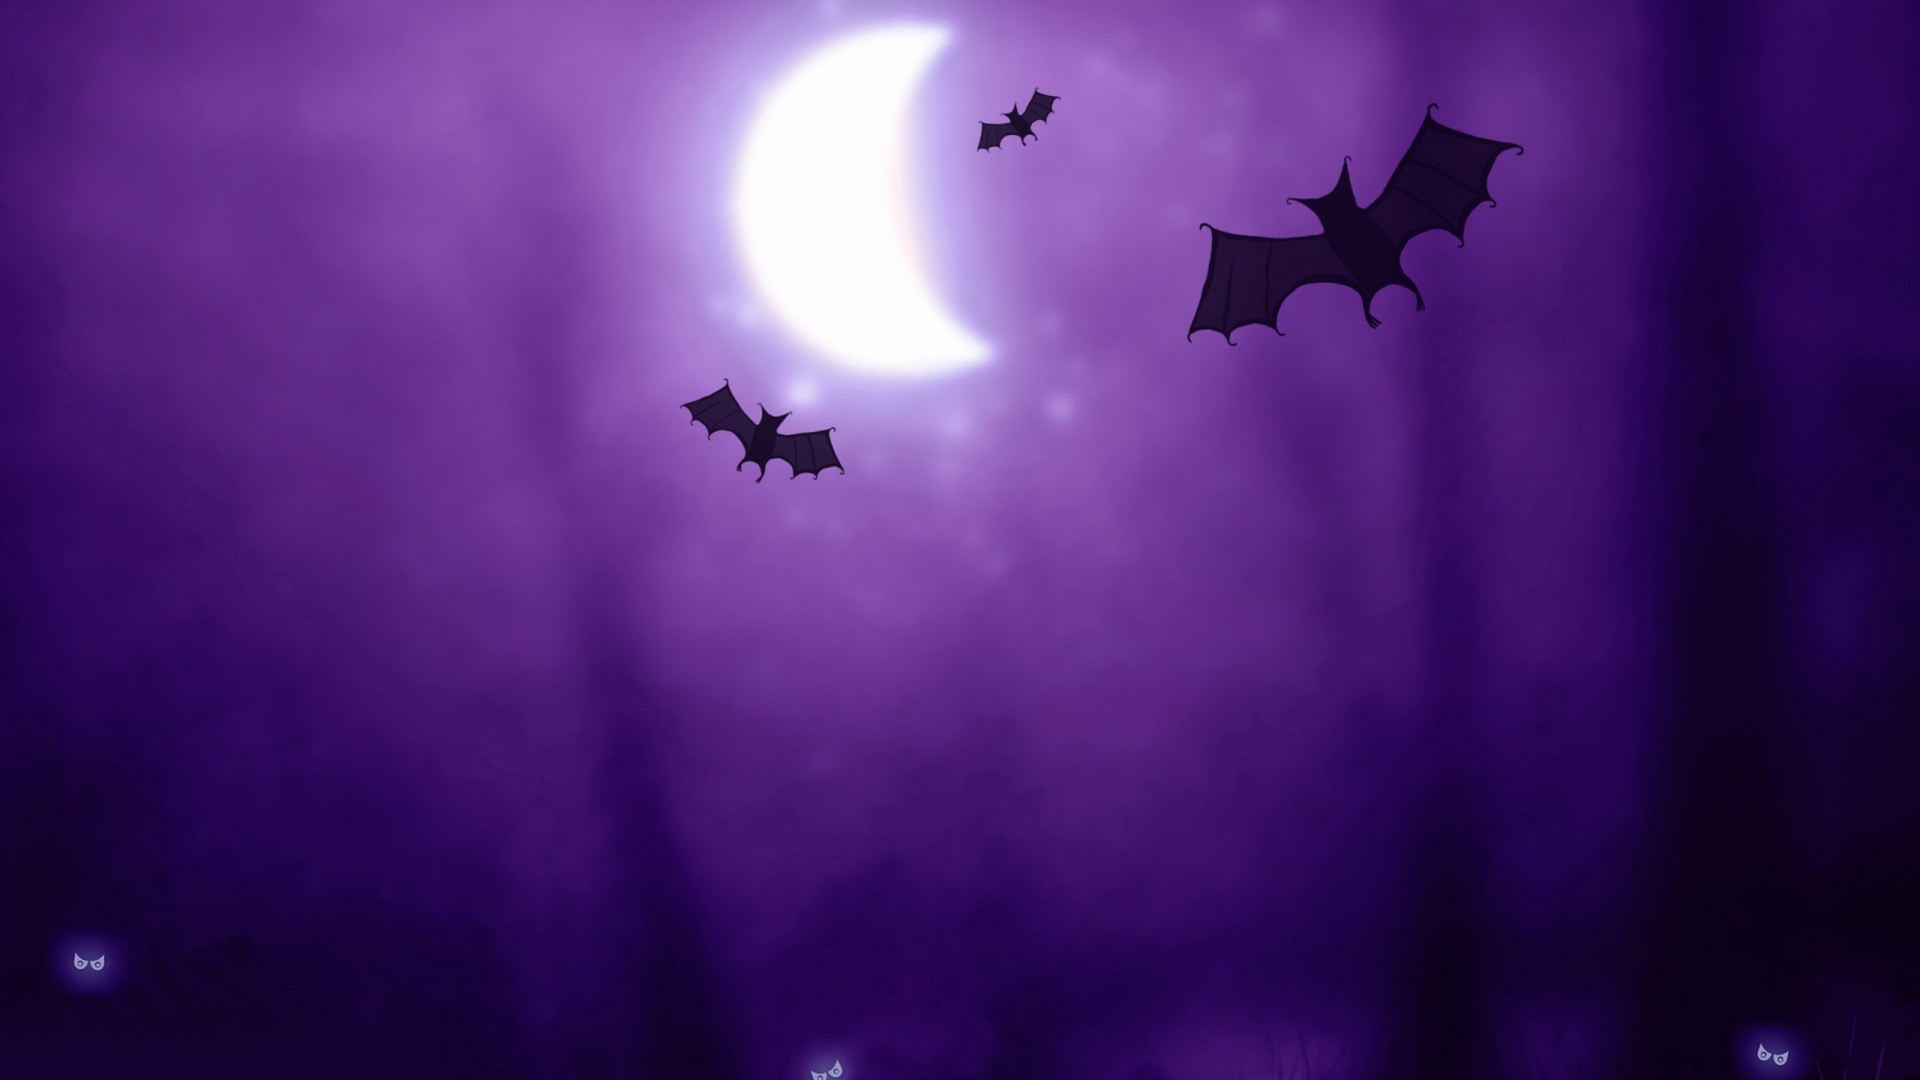 Bats in the purple night wallpaper 10848 1920x1080